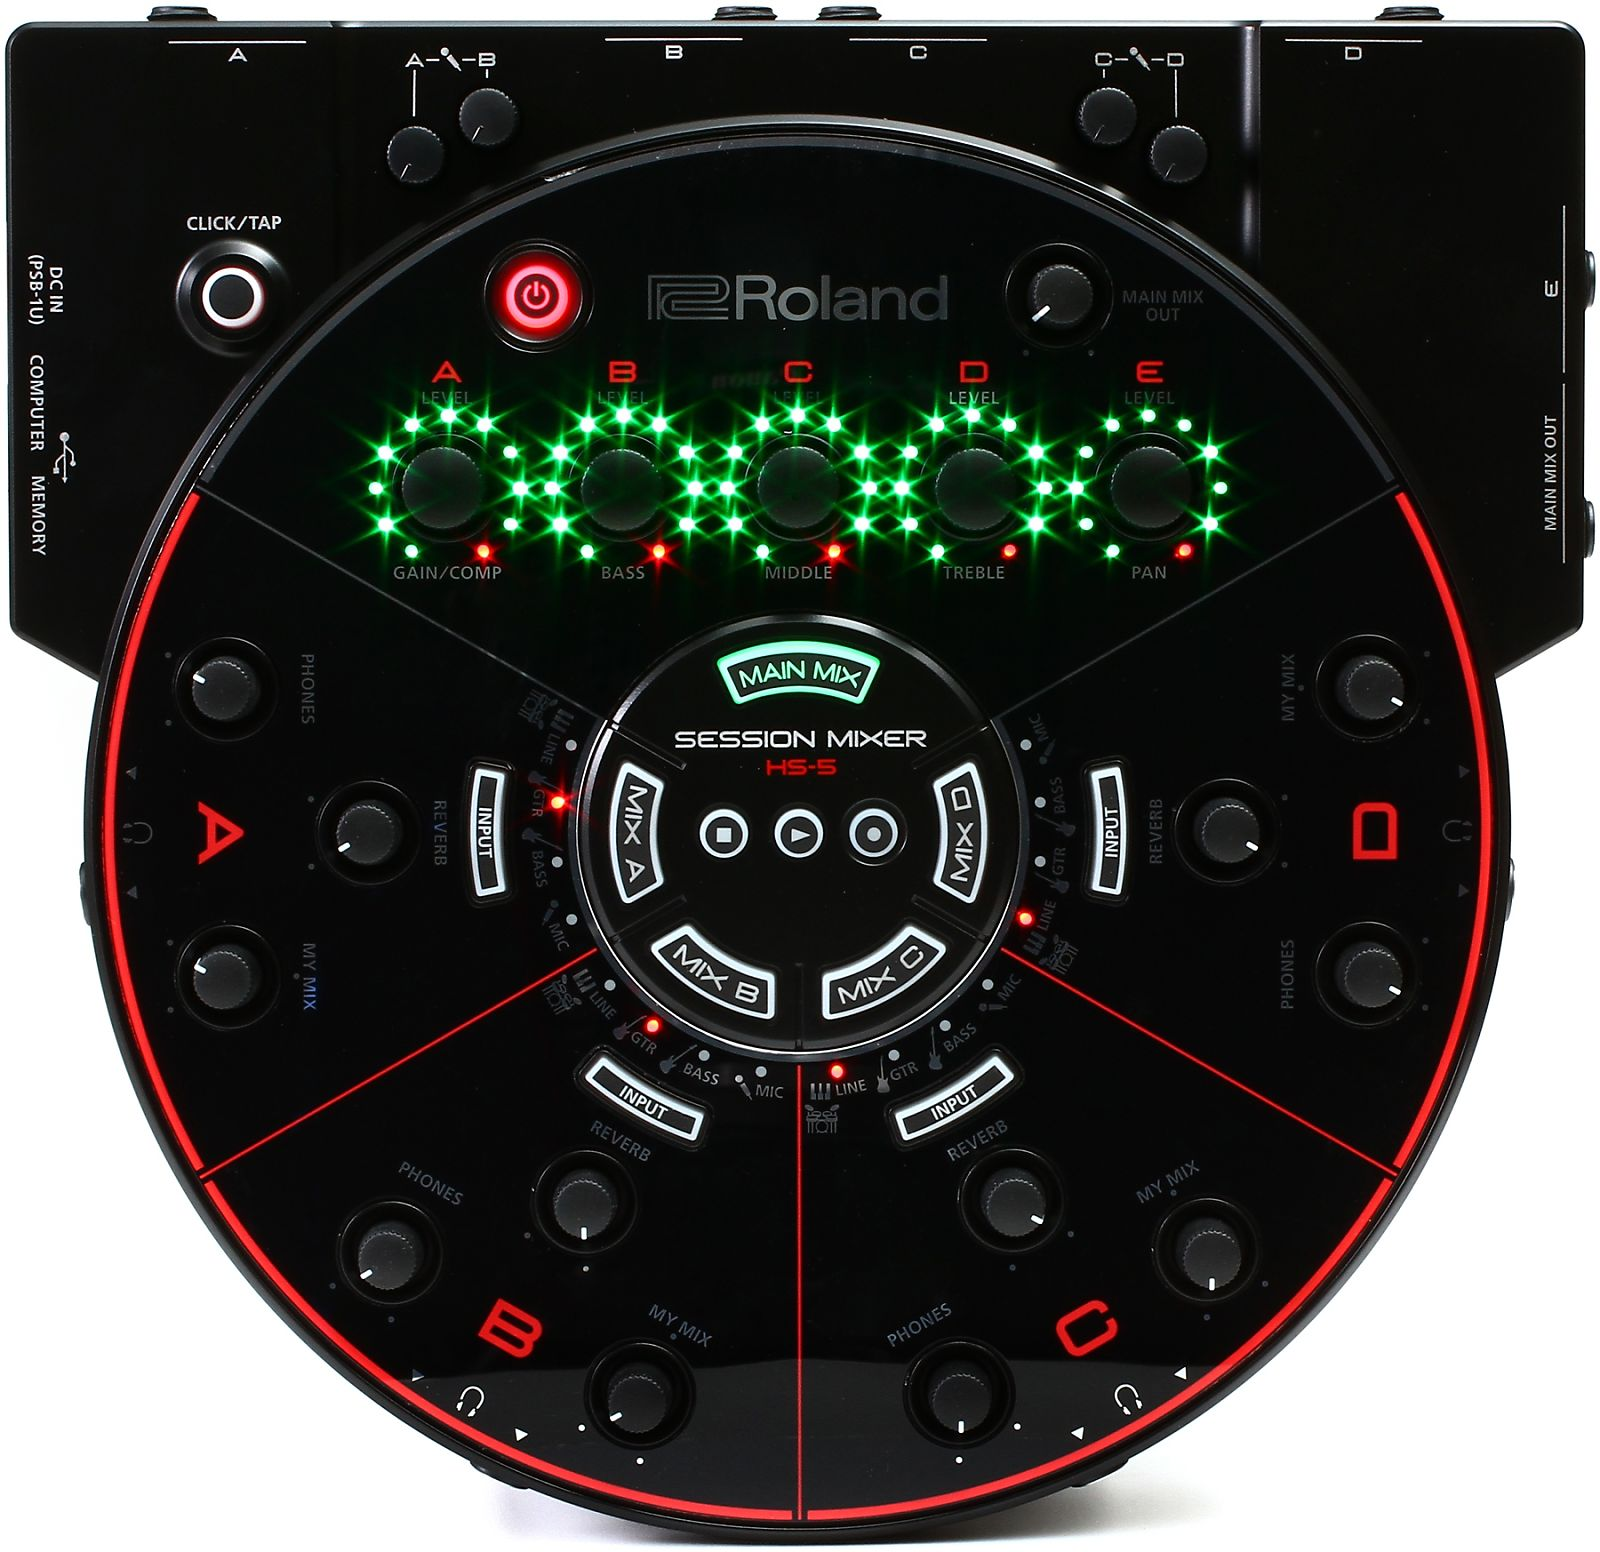 Roland hs 5 session mixer reverb for Sweetwater affiliate program